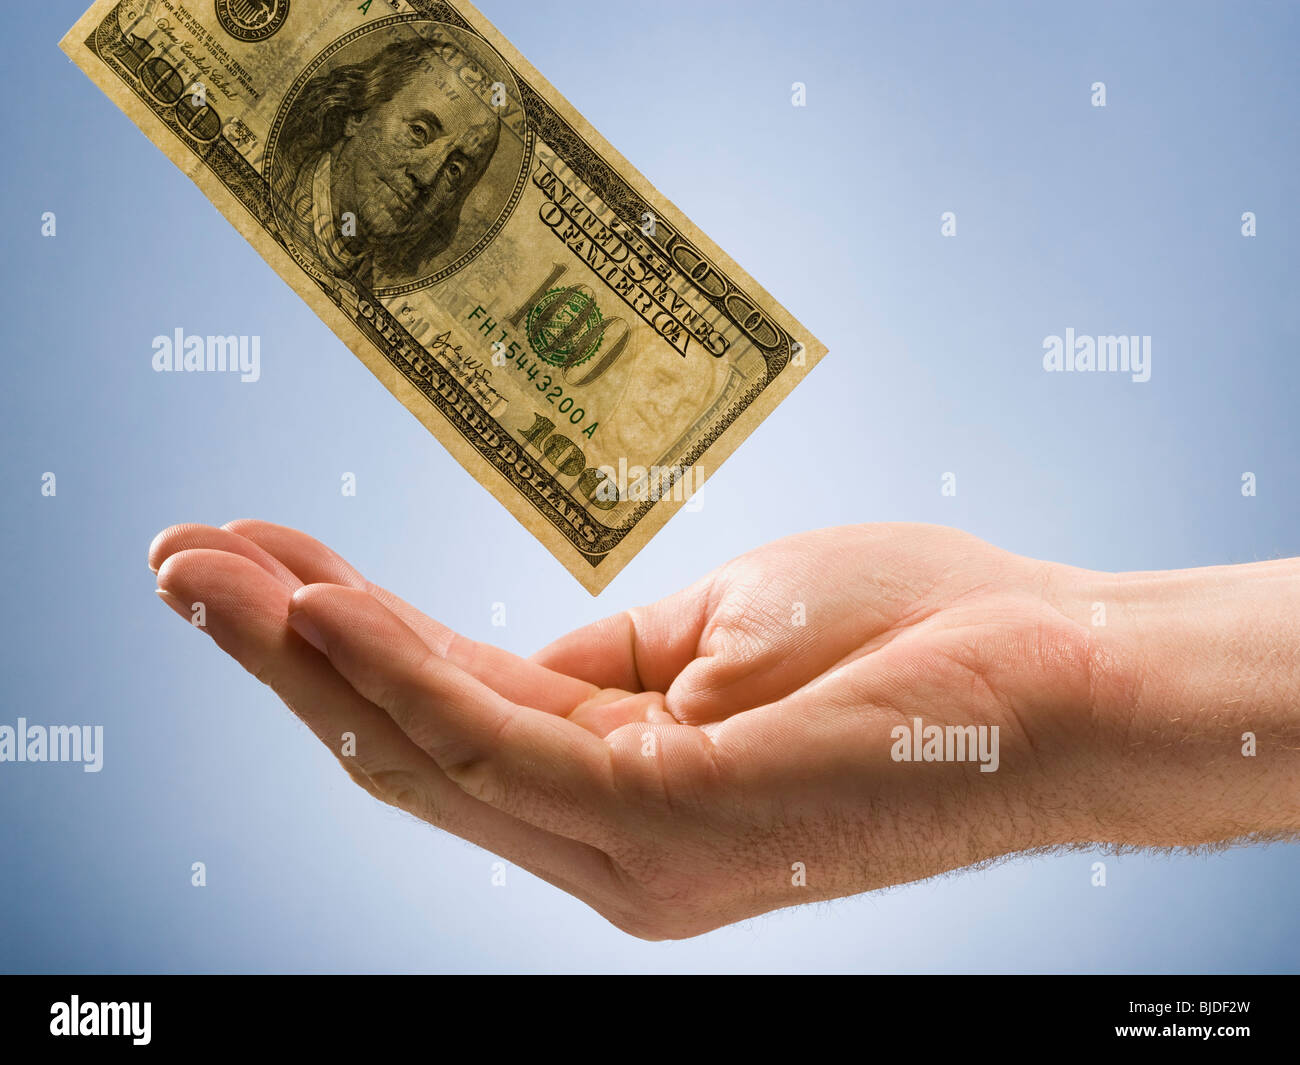 Money into a hand. - Stock Image